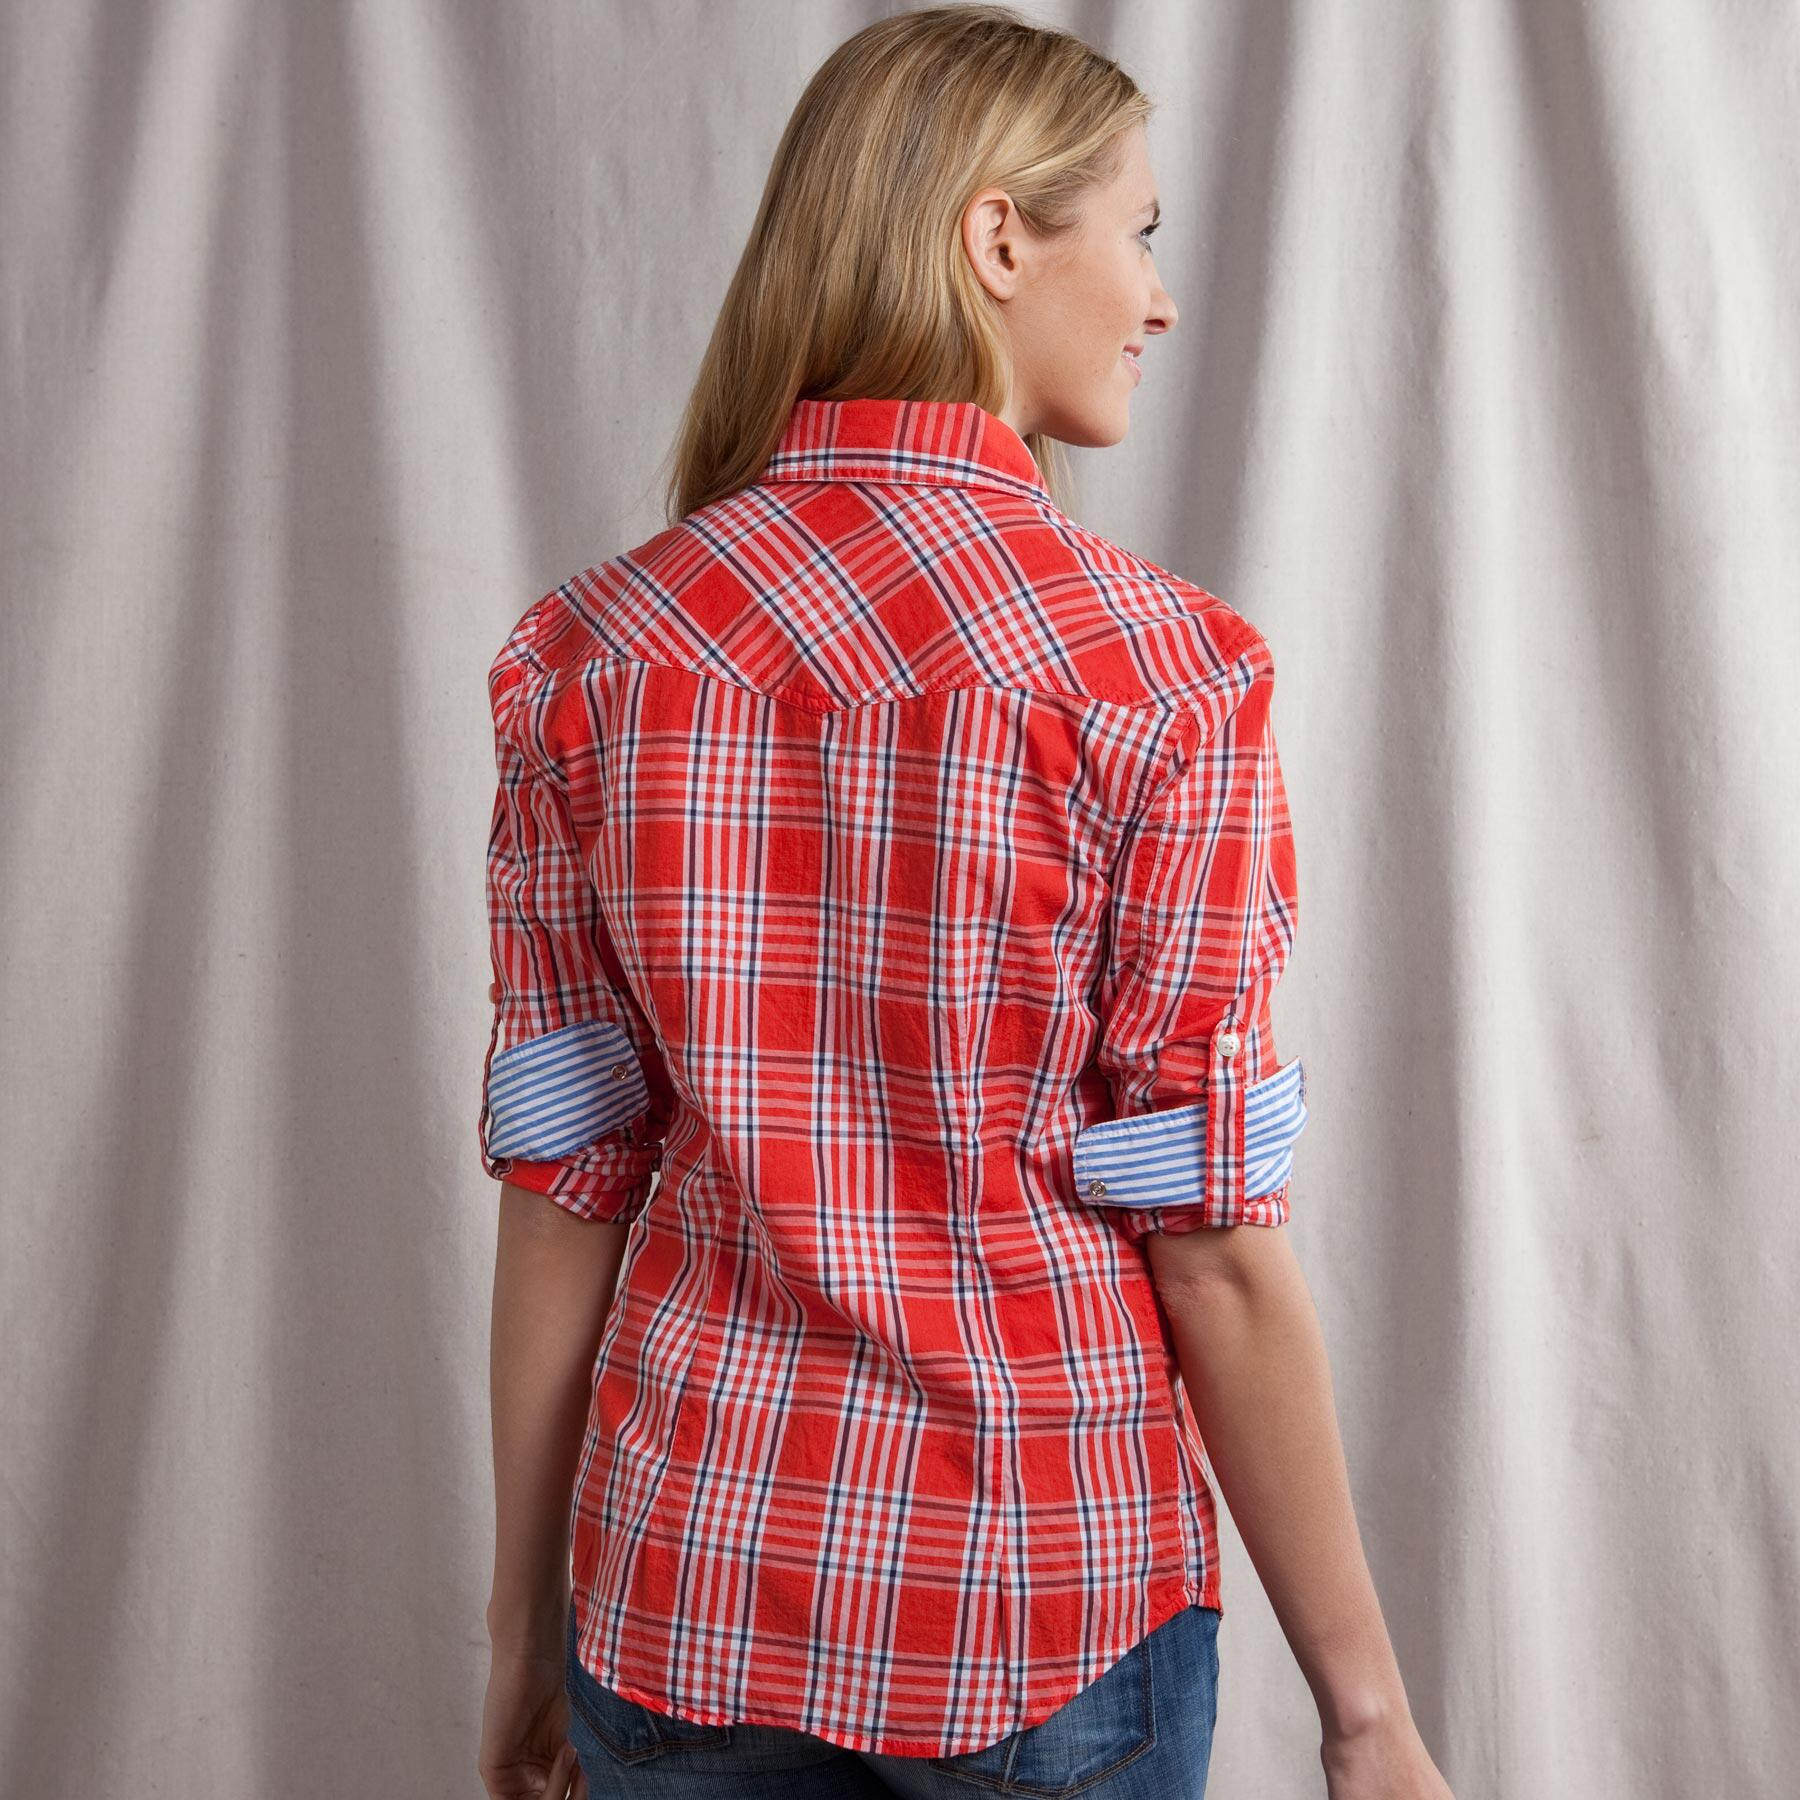 LINDY PLAID SHIRT IN RED: View 2